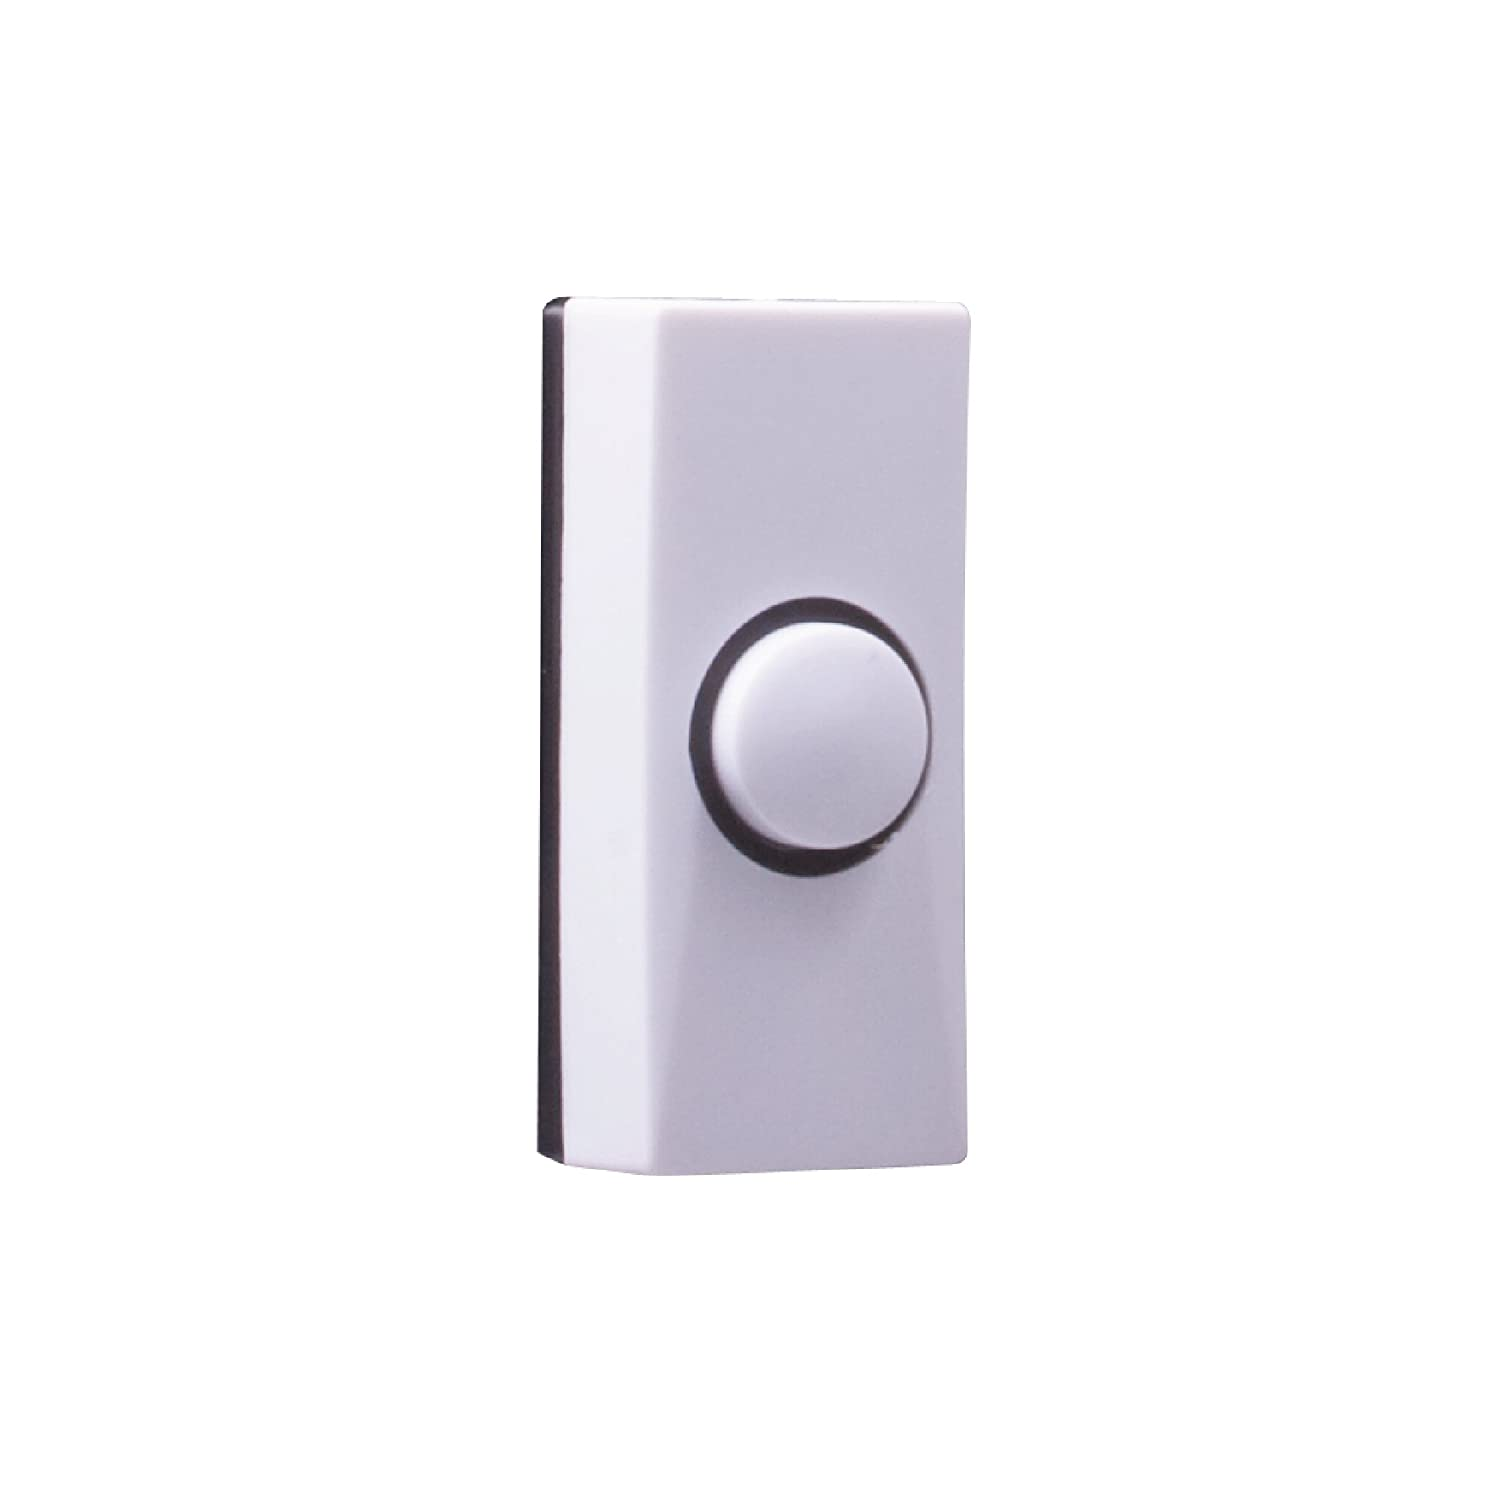 Byron 7910 Wired Bell Push White Diy Tools Keep It Clean Wiring Illuminated Button Starter Switches Free